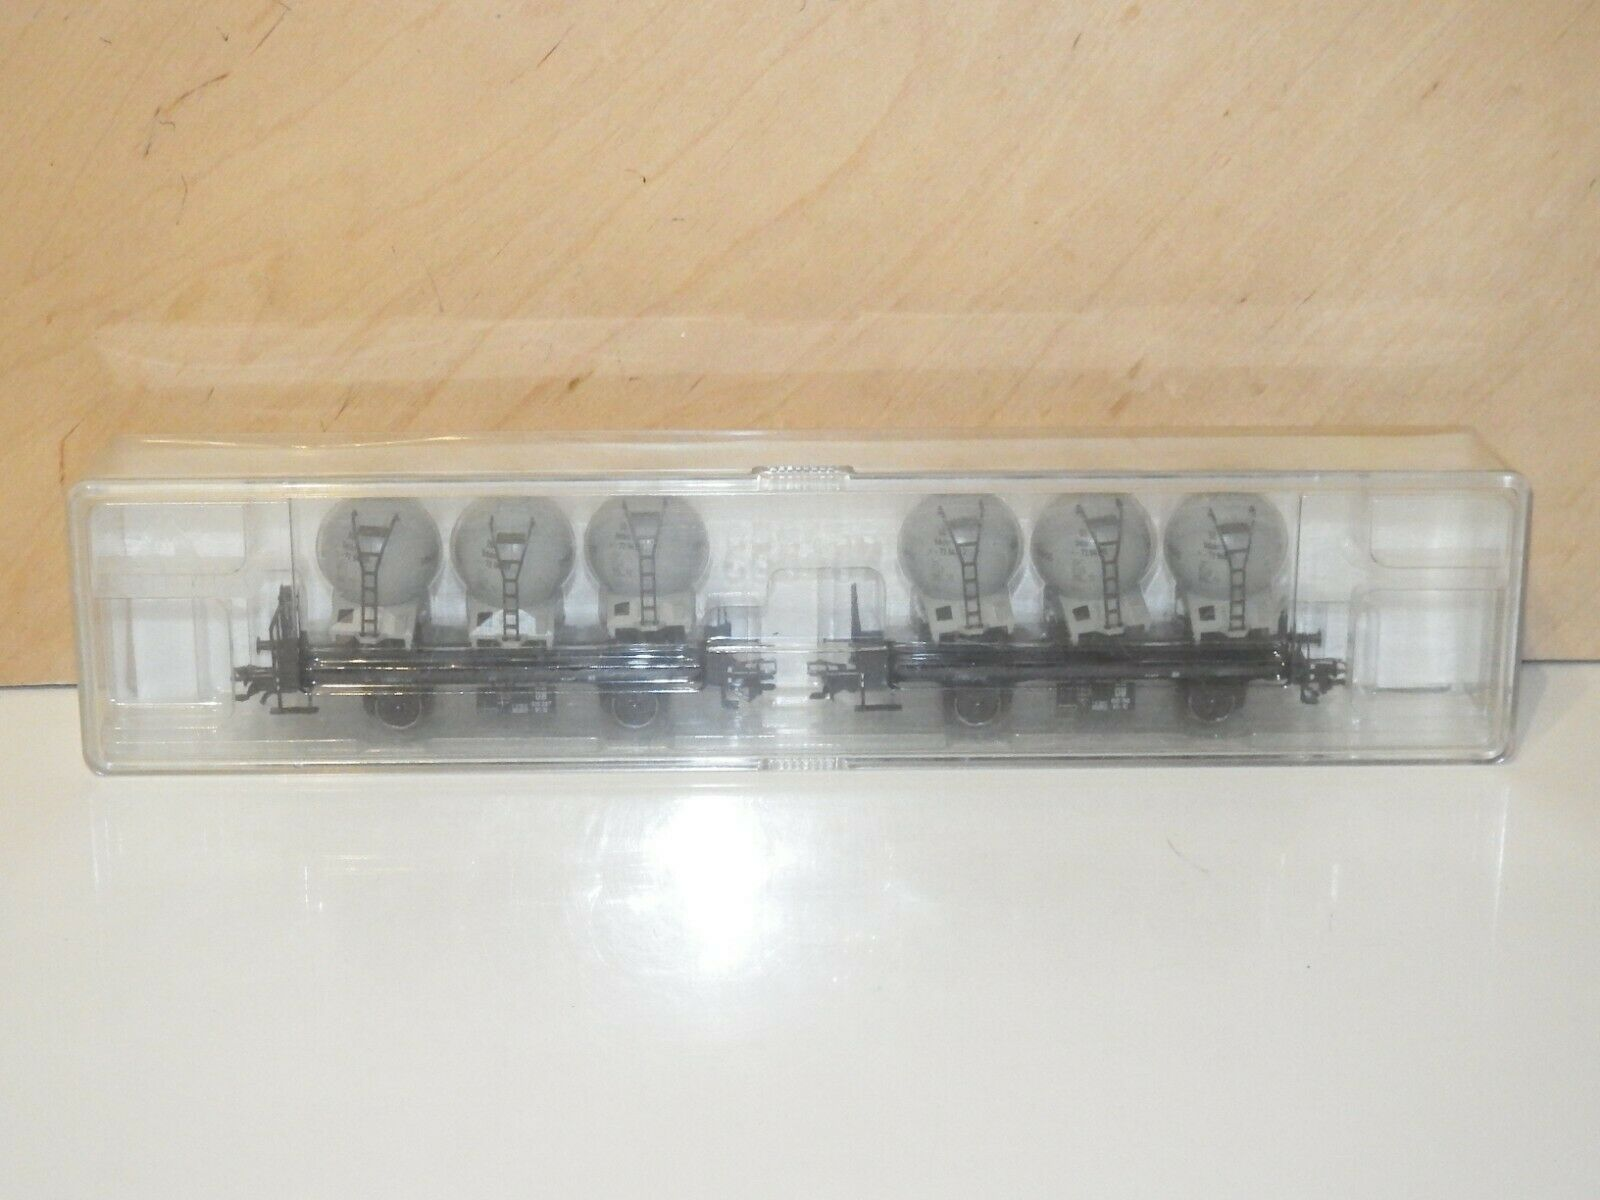 H0 Trix 24023 CONTAINER LOAD WAGON SET 2 Pieces DB MINT BOXED 3178